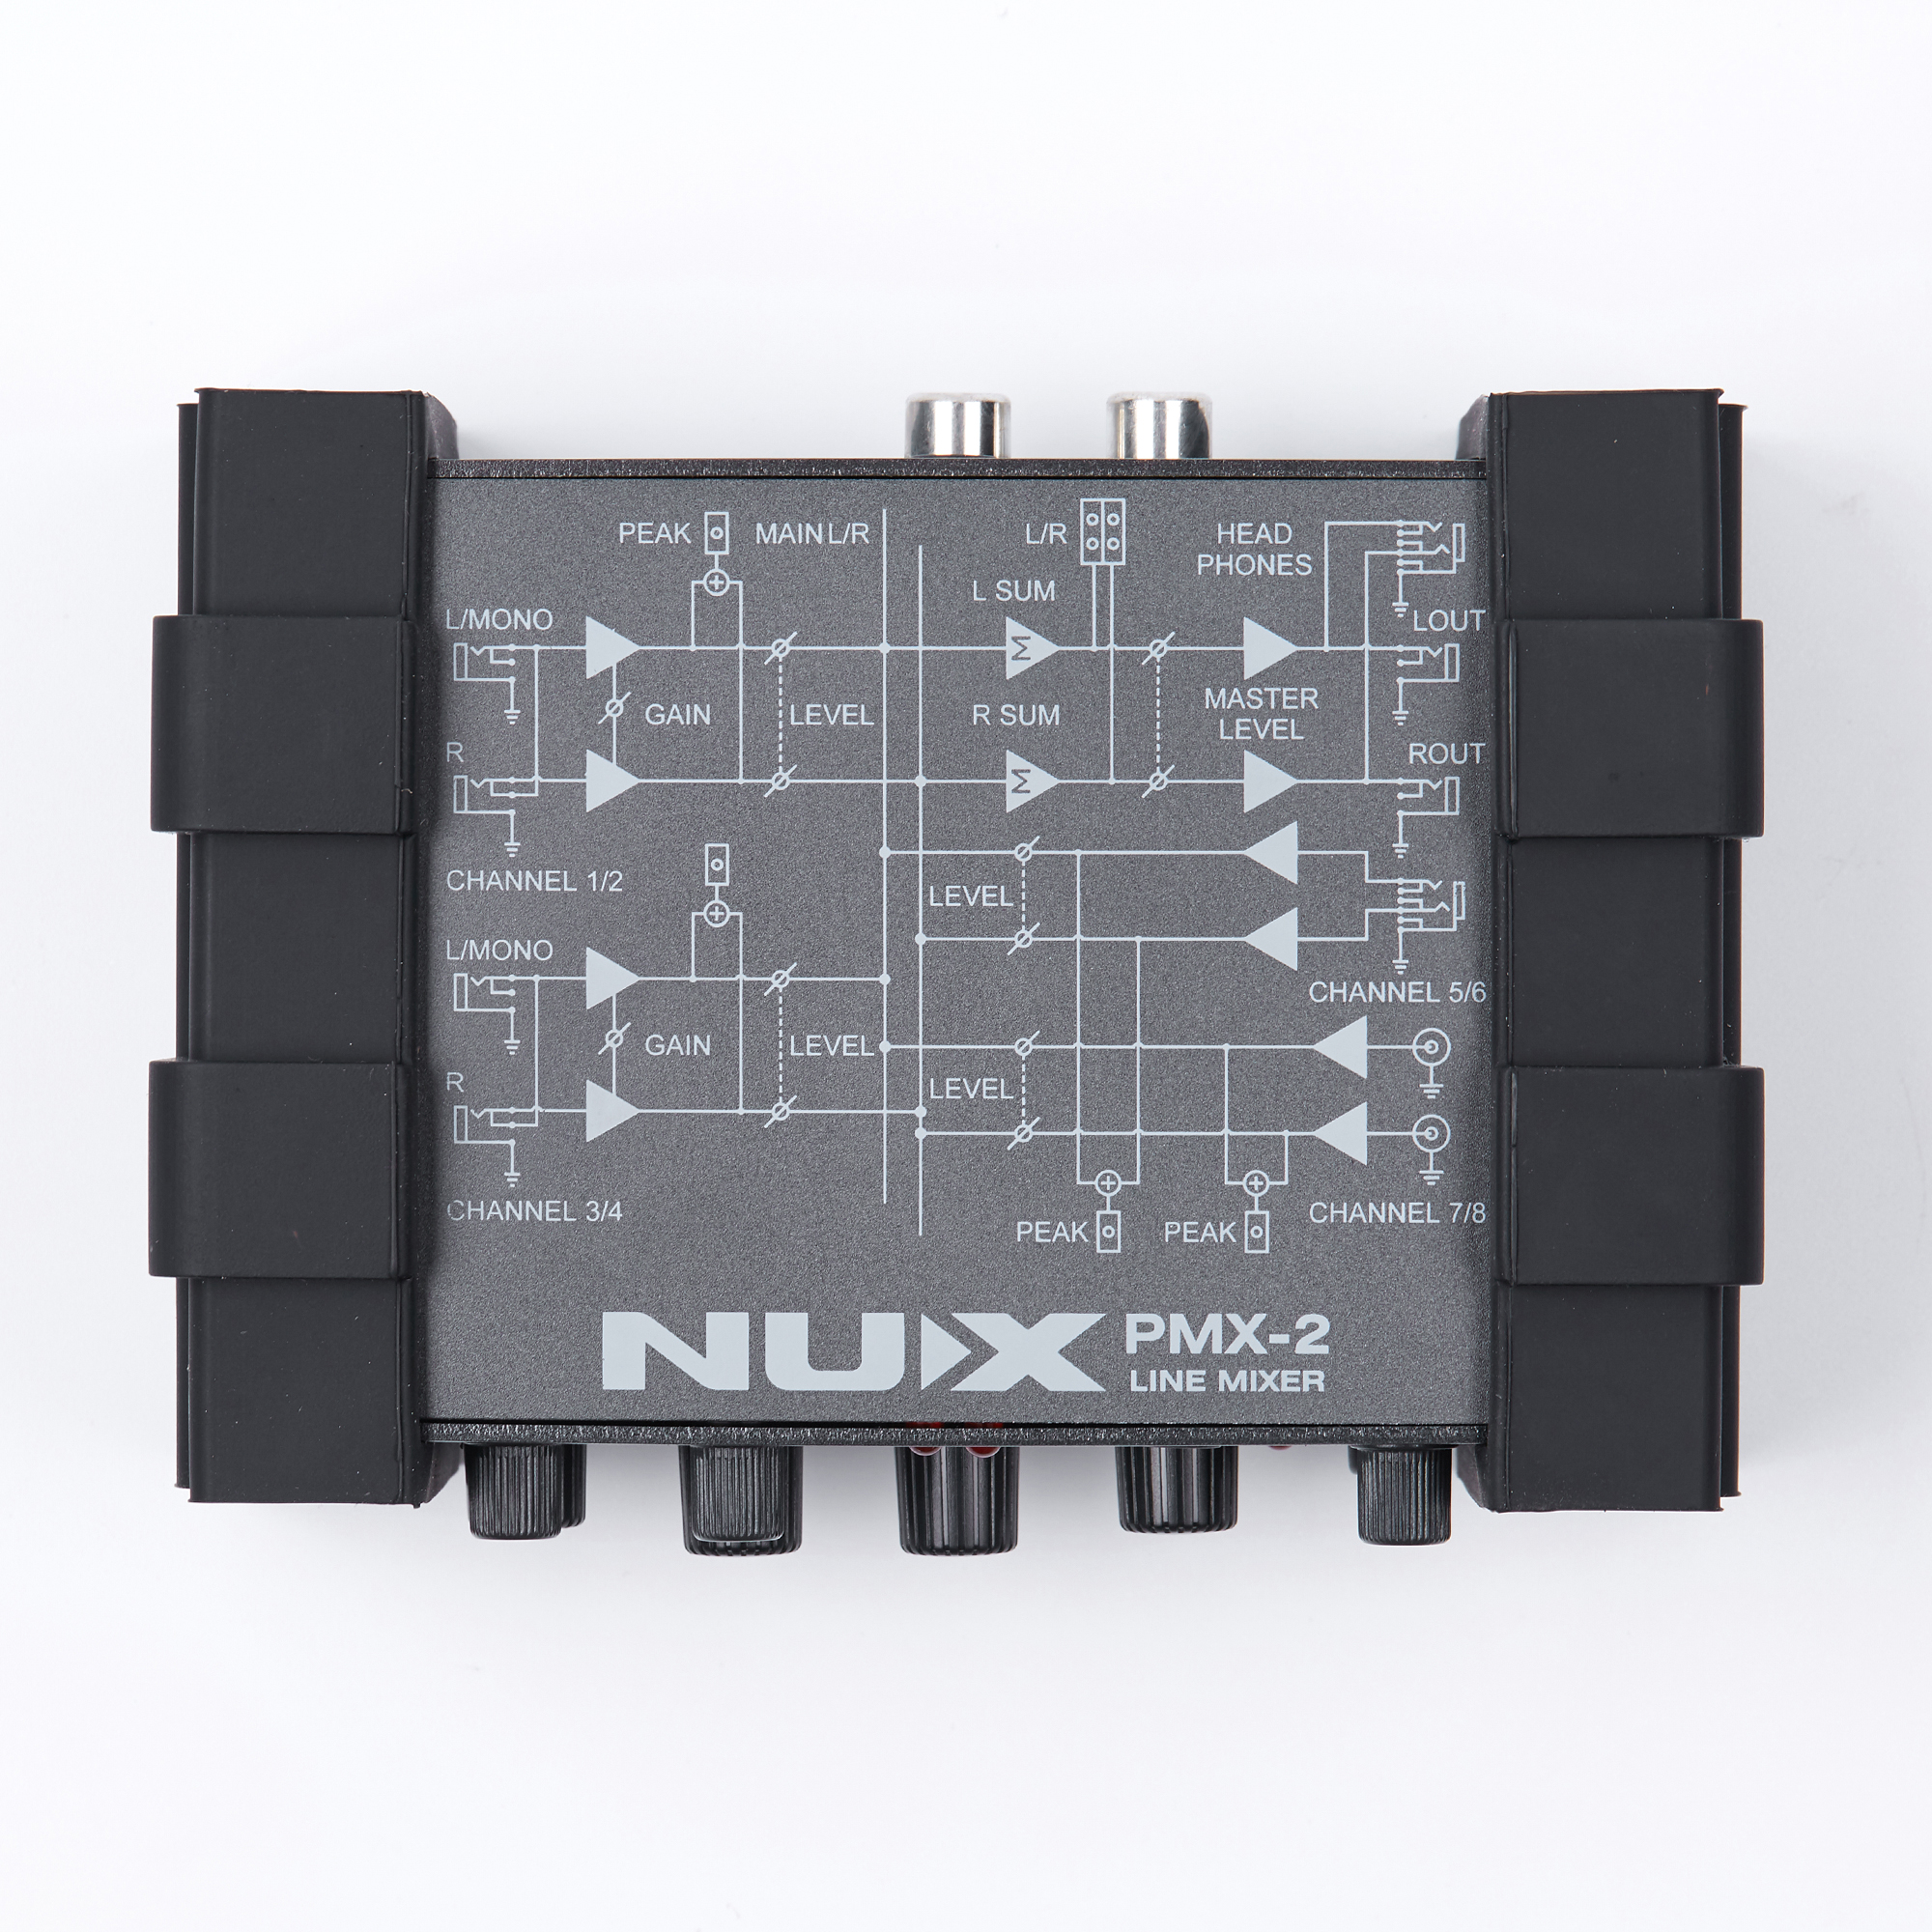 Gain Control 8 Inputs and 2 Outputs NUX PMX-2 Multi-Channel Mini Mixer 30 Musical Instruments Accessories for Guitar Bass Player настенные часы w era 10250